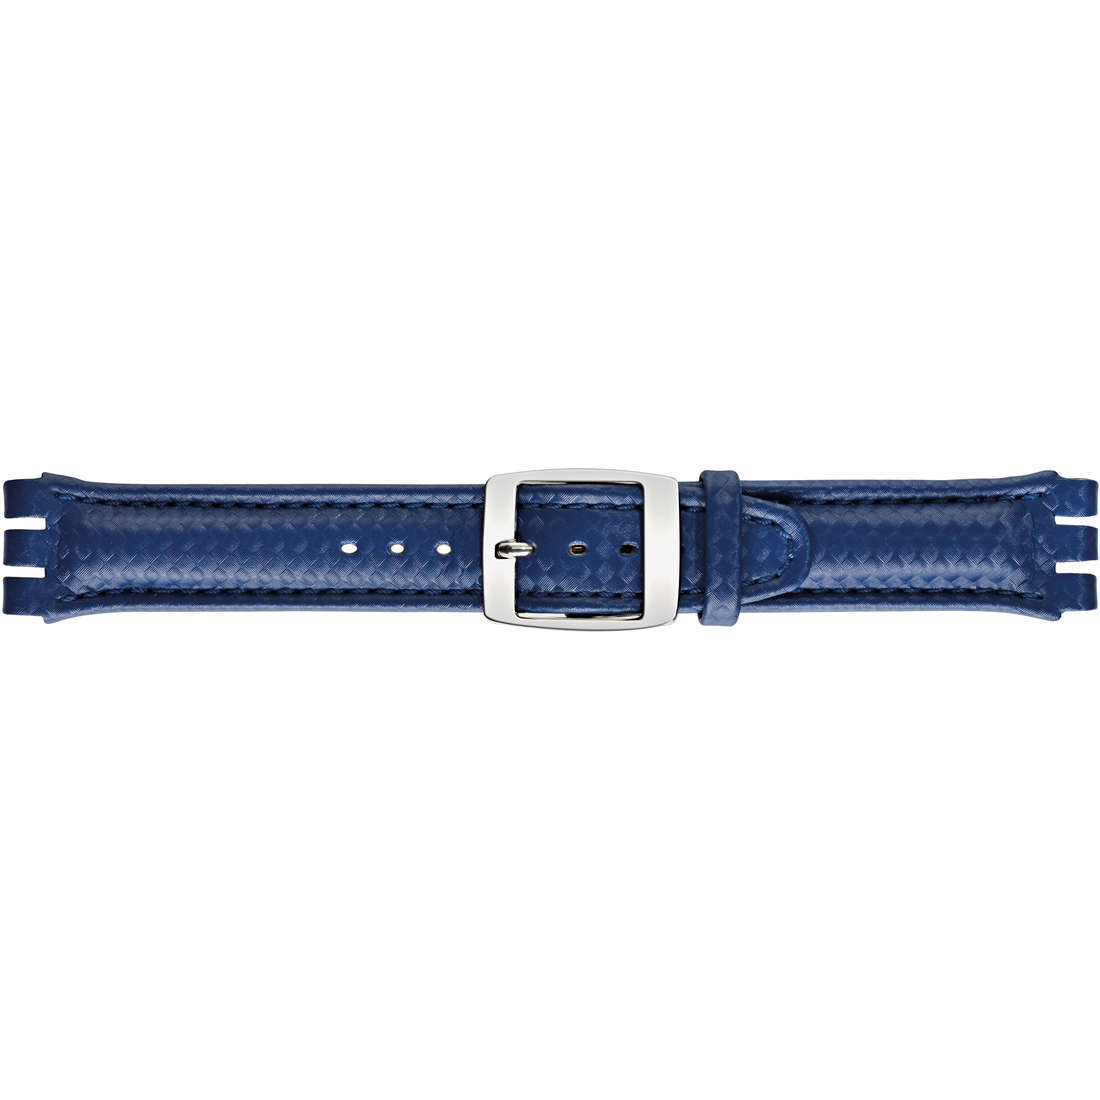 watch watch bands watch straps man Morellato Swatch A01U1840840825MO20